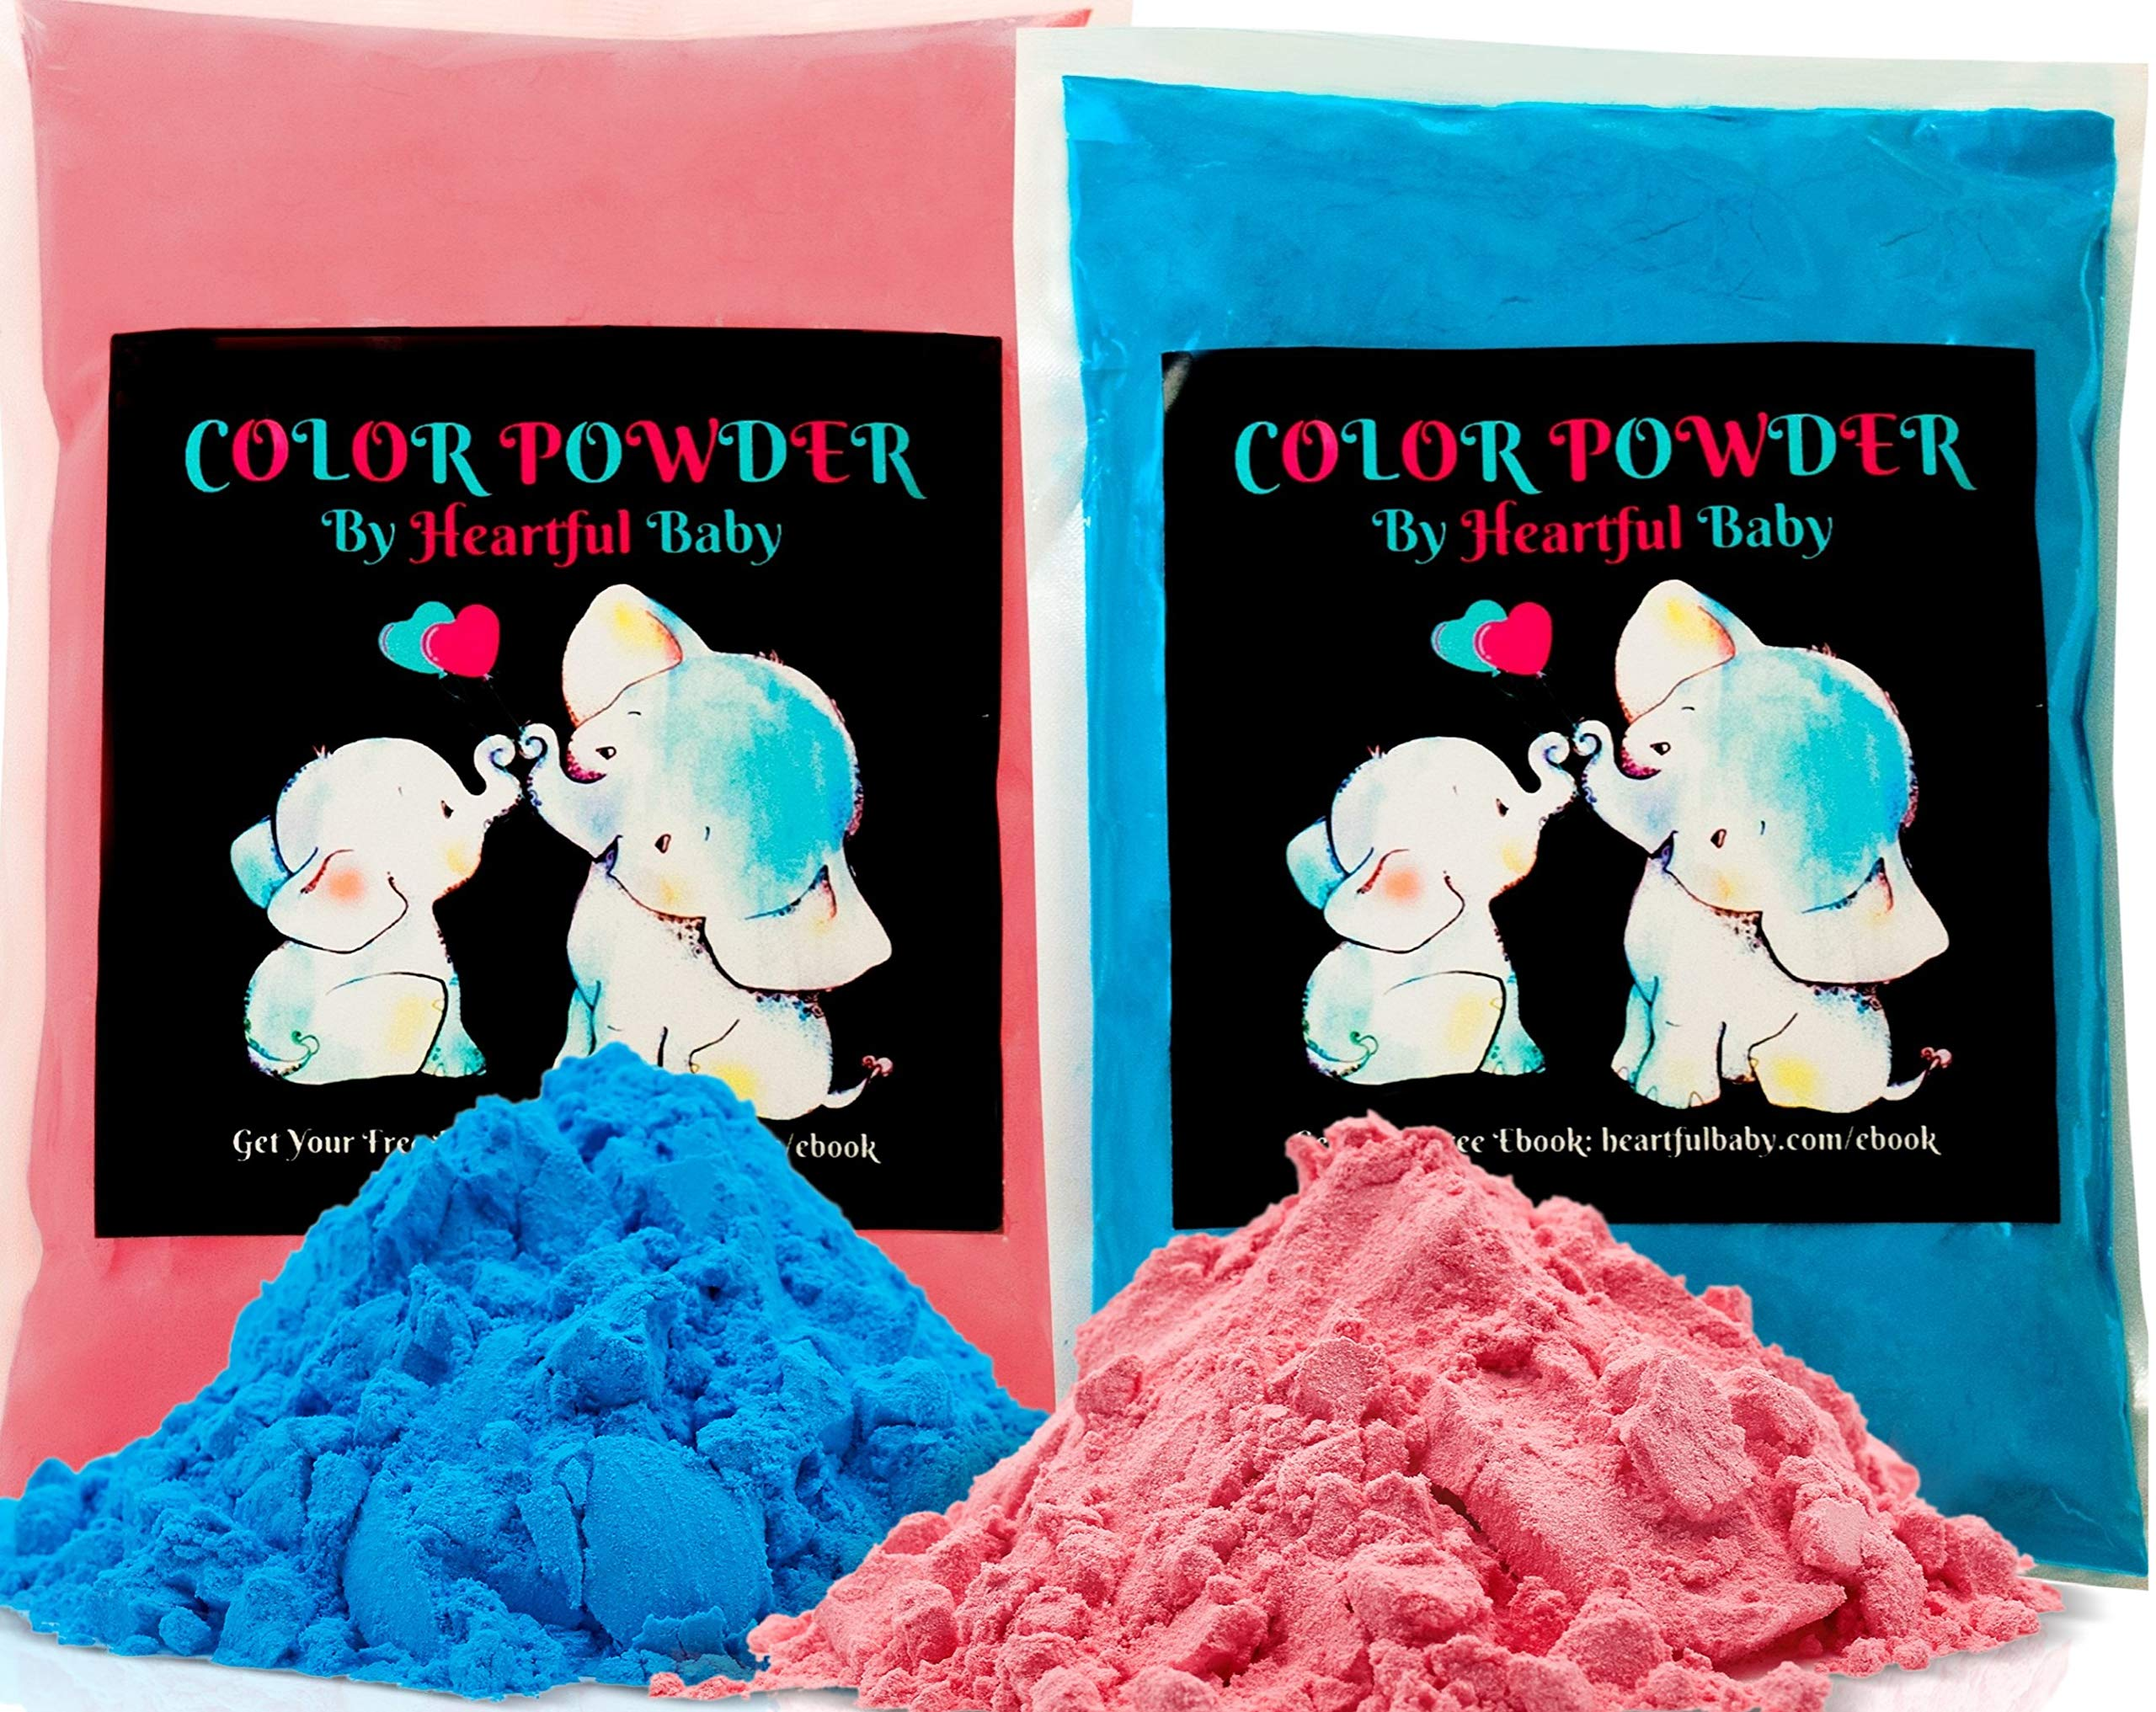 Baby Gender Reveal Party Supplies - 2lb Pink and 2 lb Blue Color Powder Bag - FREE BONUS EBOOK - Girl or Boy Announcement - Holi Festival Colored Powdered Smoke Bomb - Car Exhaust Burnout - 5k Fun Run